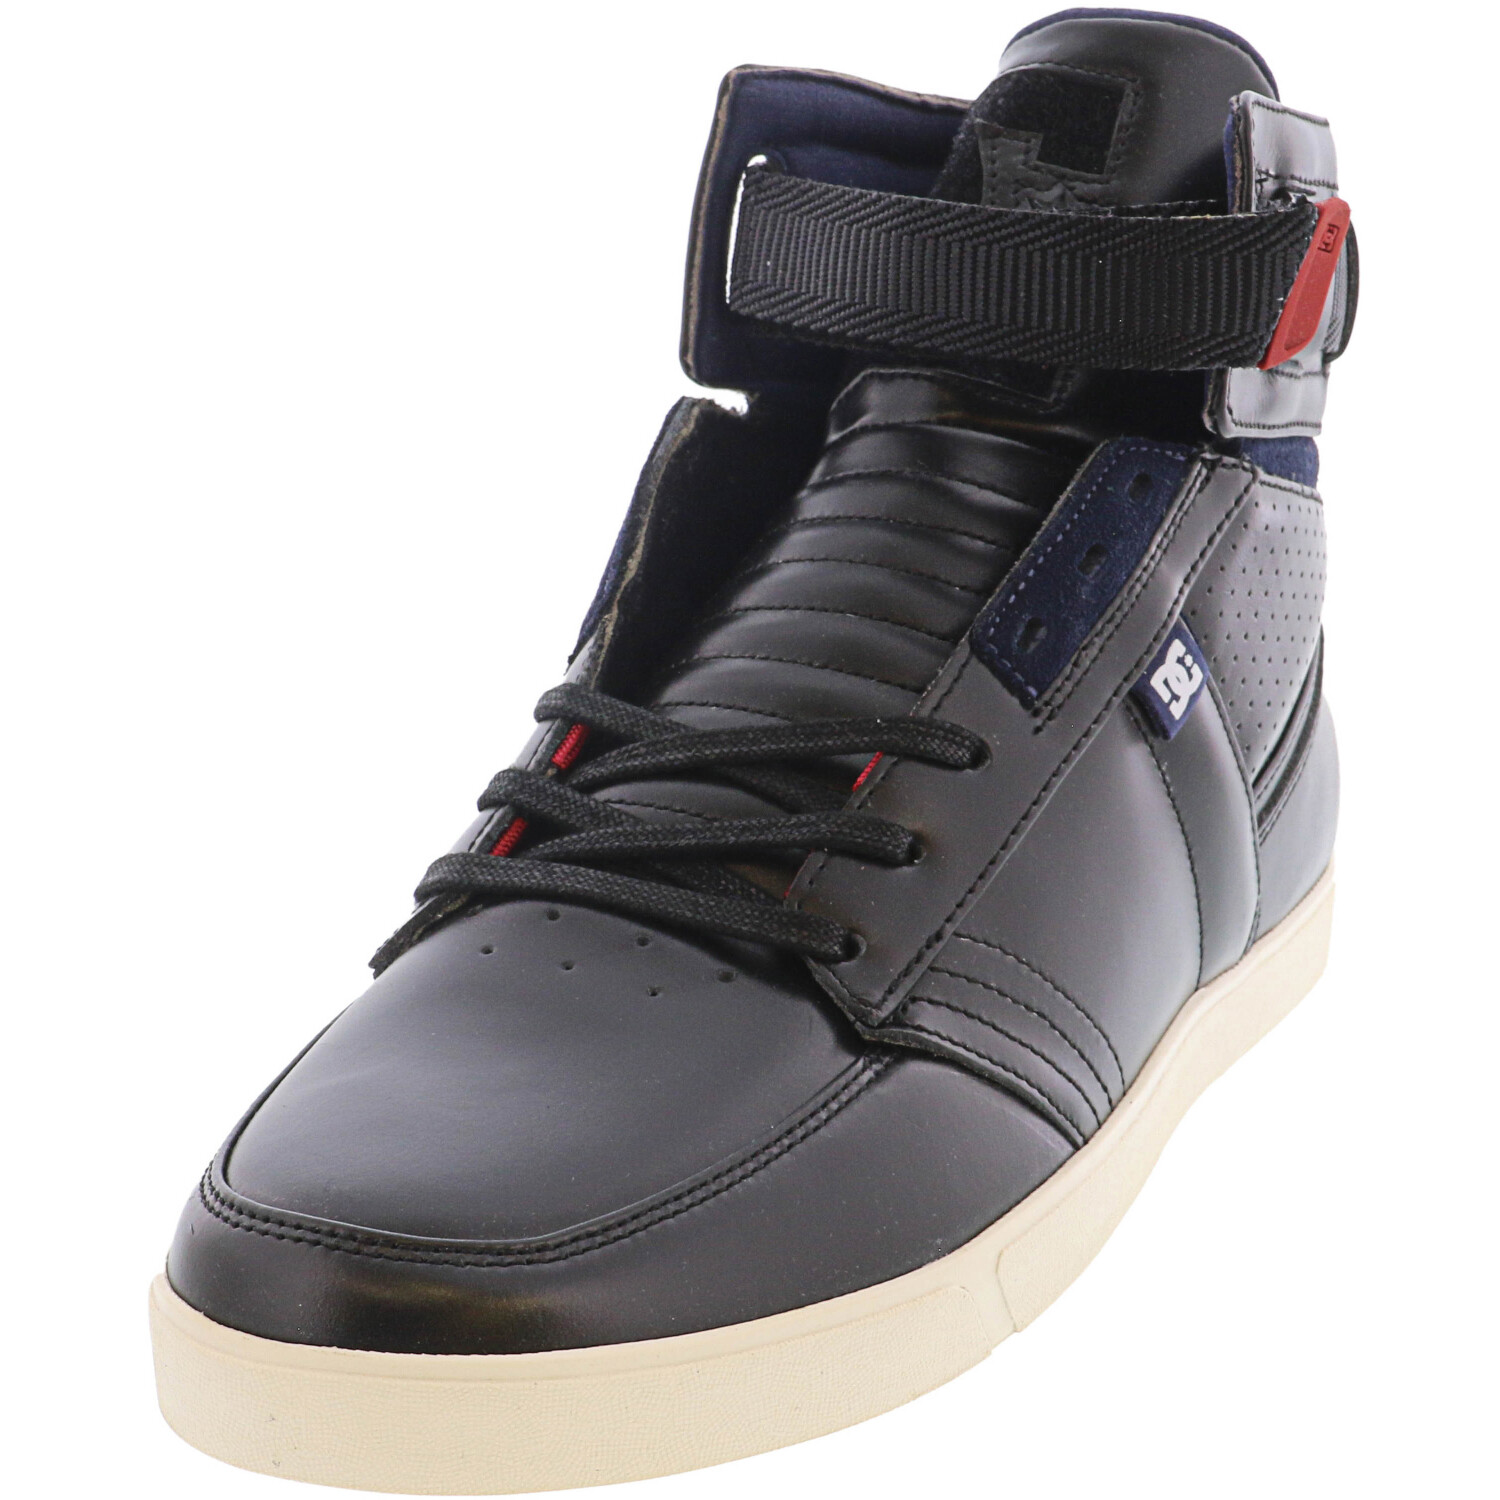 Dc Men's Admiral Sport Black High-Top Leather Women' - 9.5M